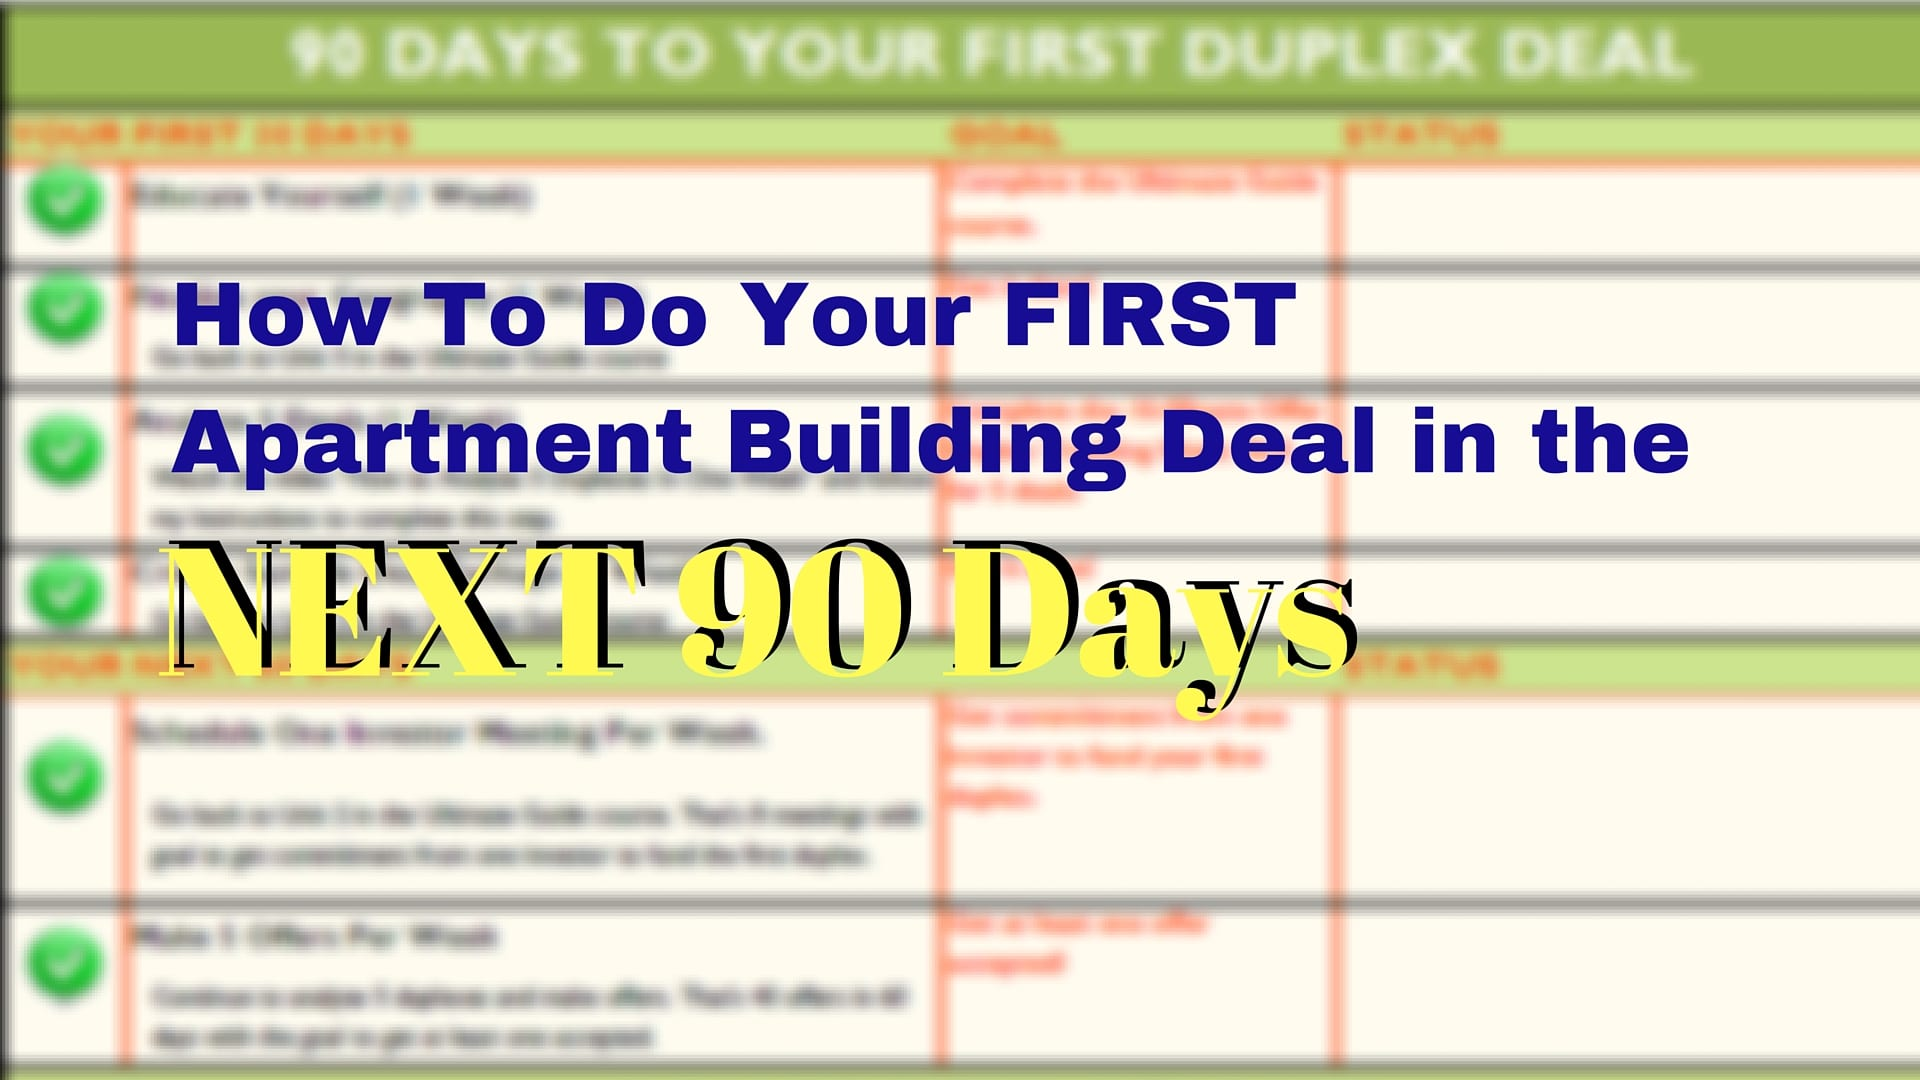 Checklist To Your FIRST Apartment Building Deal in the NEXT 90 days